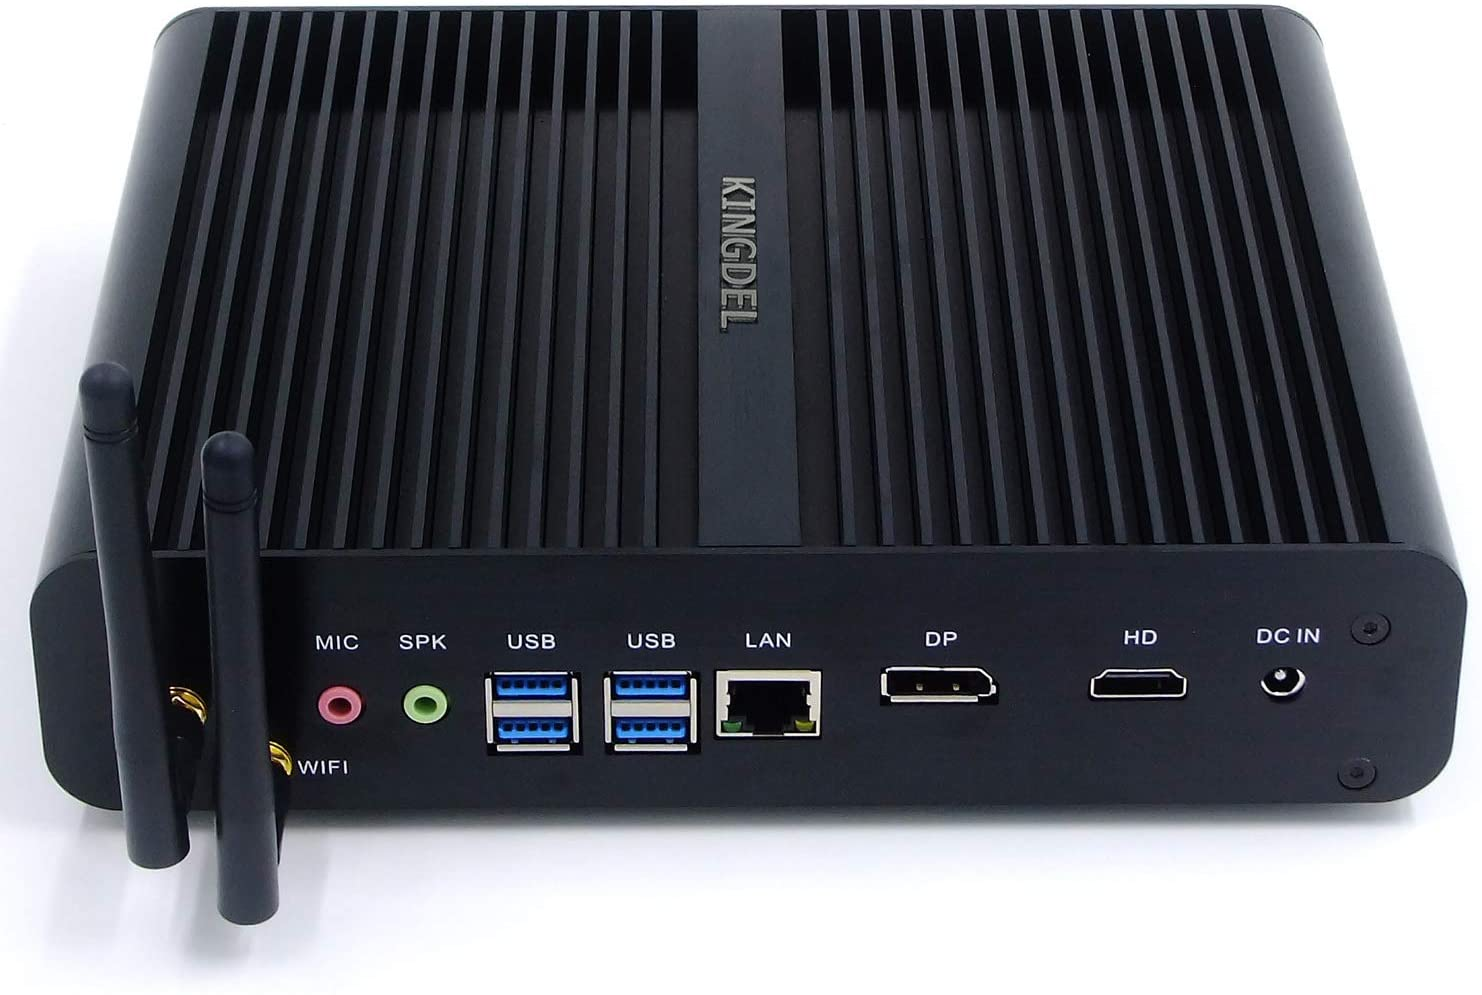 Kingdel NC860 Fanless Mini PC, Slim Desktop Computer, Intel i7-8550U 8th Gen. 4 Cores CPU, 16GB DDR4 RAM, 256GB SSD, 4K 4096x2304, HD Port, DP, WiFi, Metal Case, Windows 10 Pro